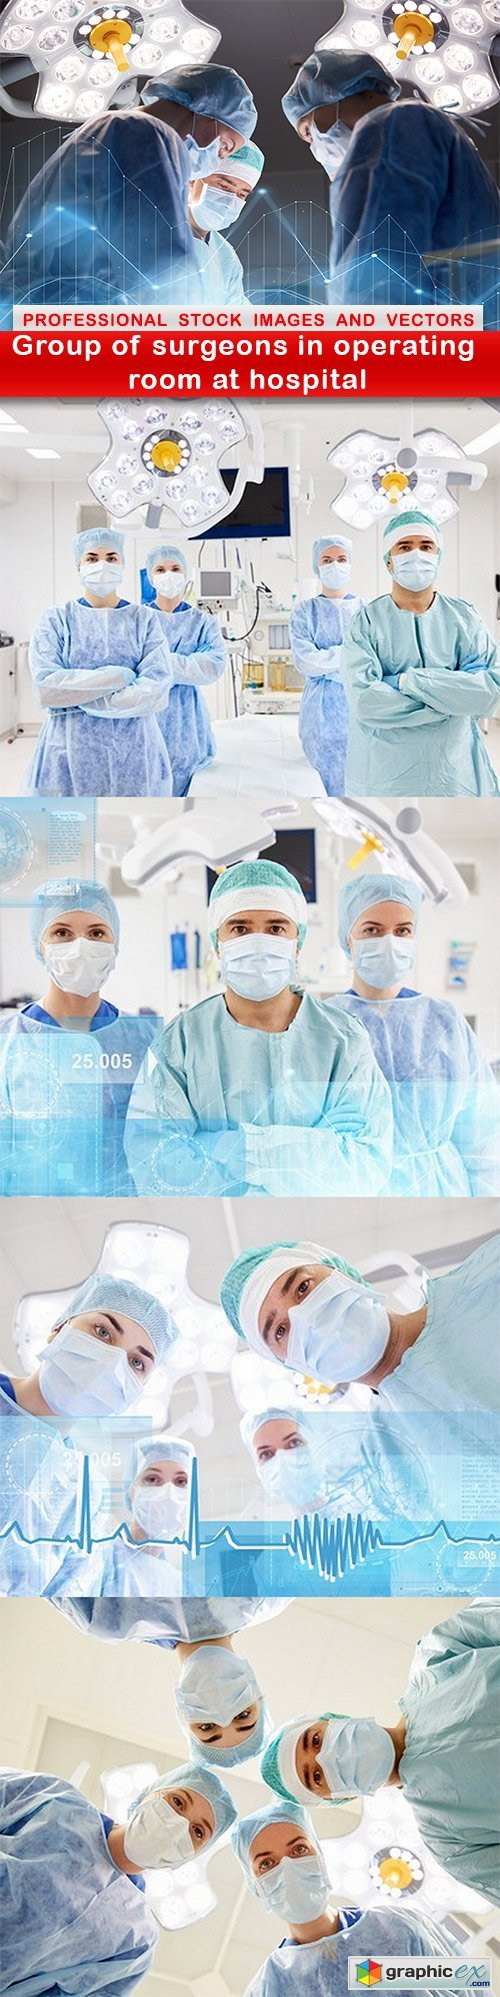 Group of surgeons in operating room at hospital - 5 UHQ JPEG